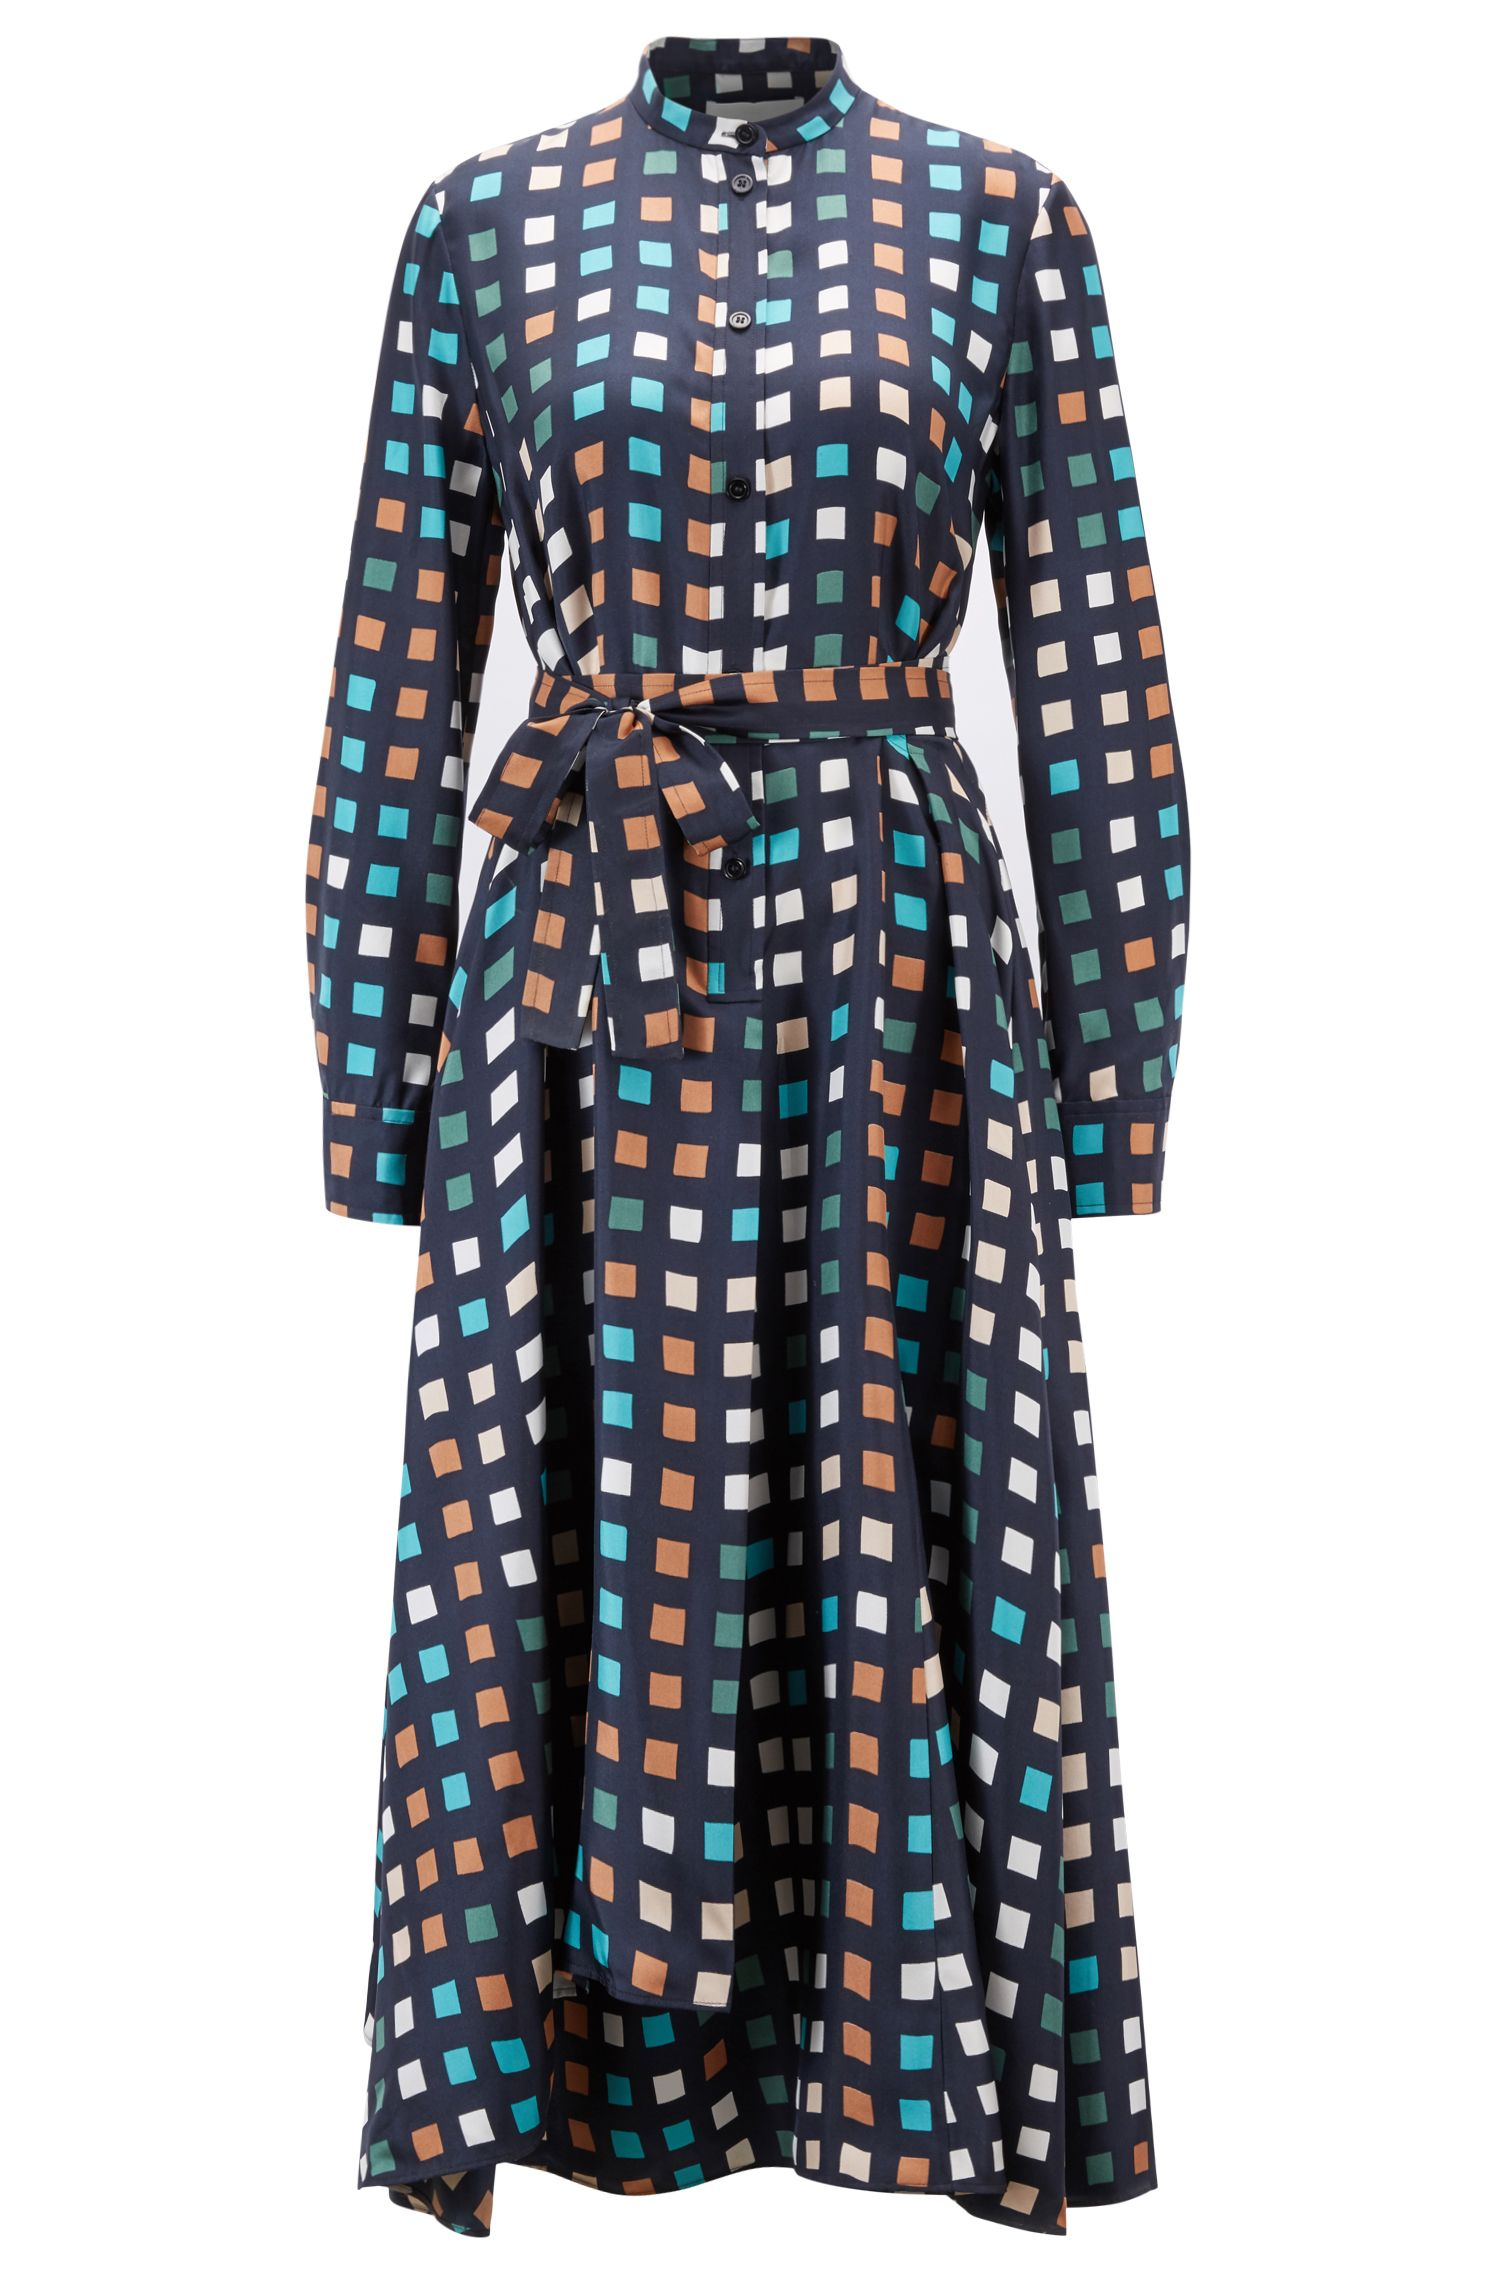 Multi-colored cube-print shirt dress in silk twill, Patterned